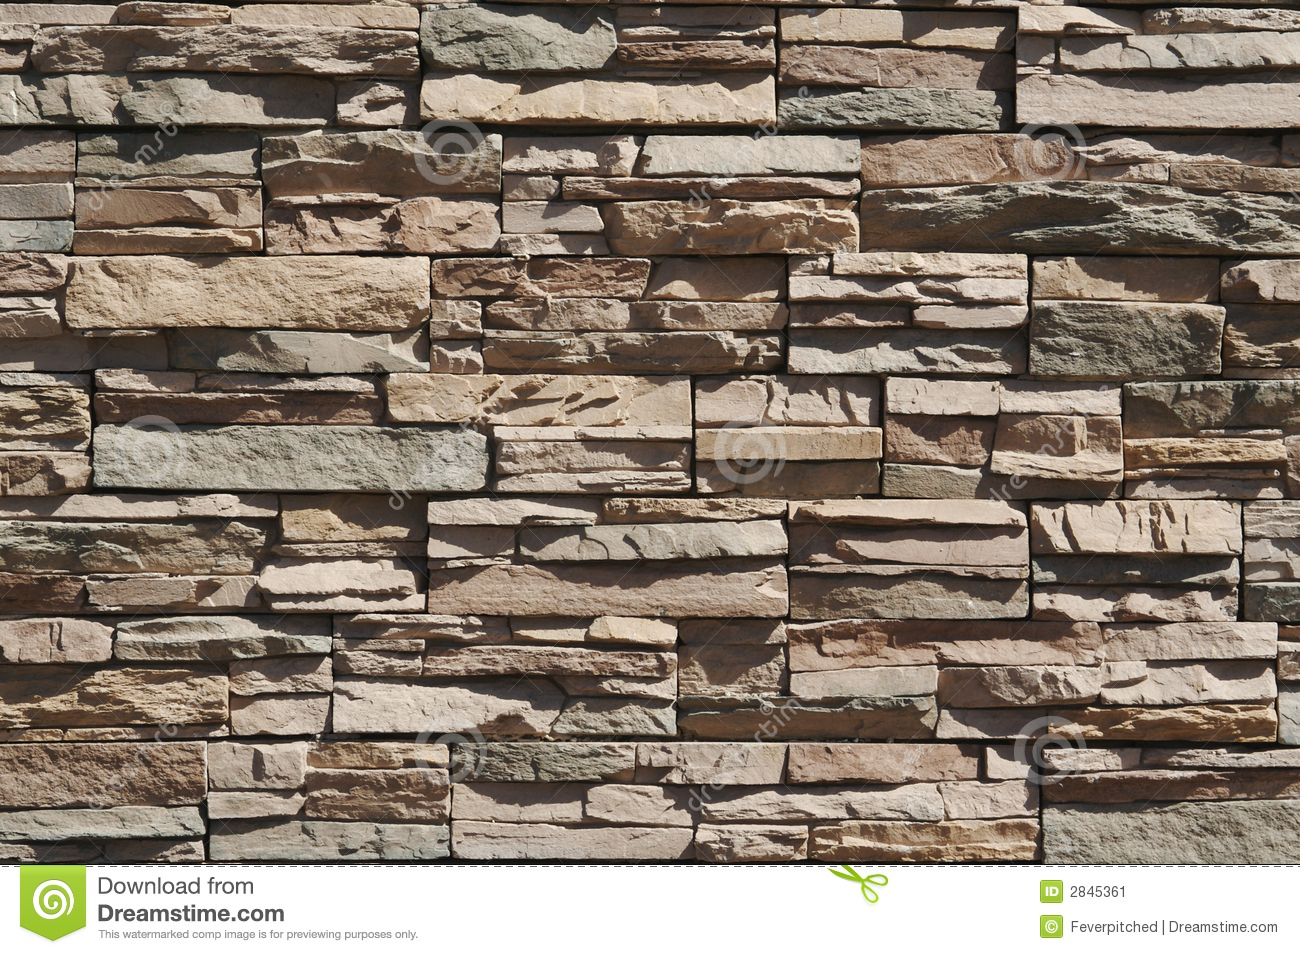 abstract rock wall background stock image image of pattern rough 2845361. Black Bedroom Furniture Sets. Home Design Ideas